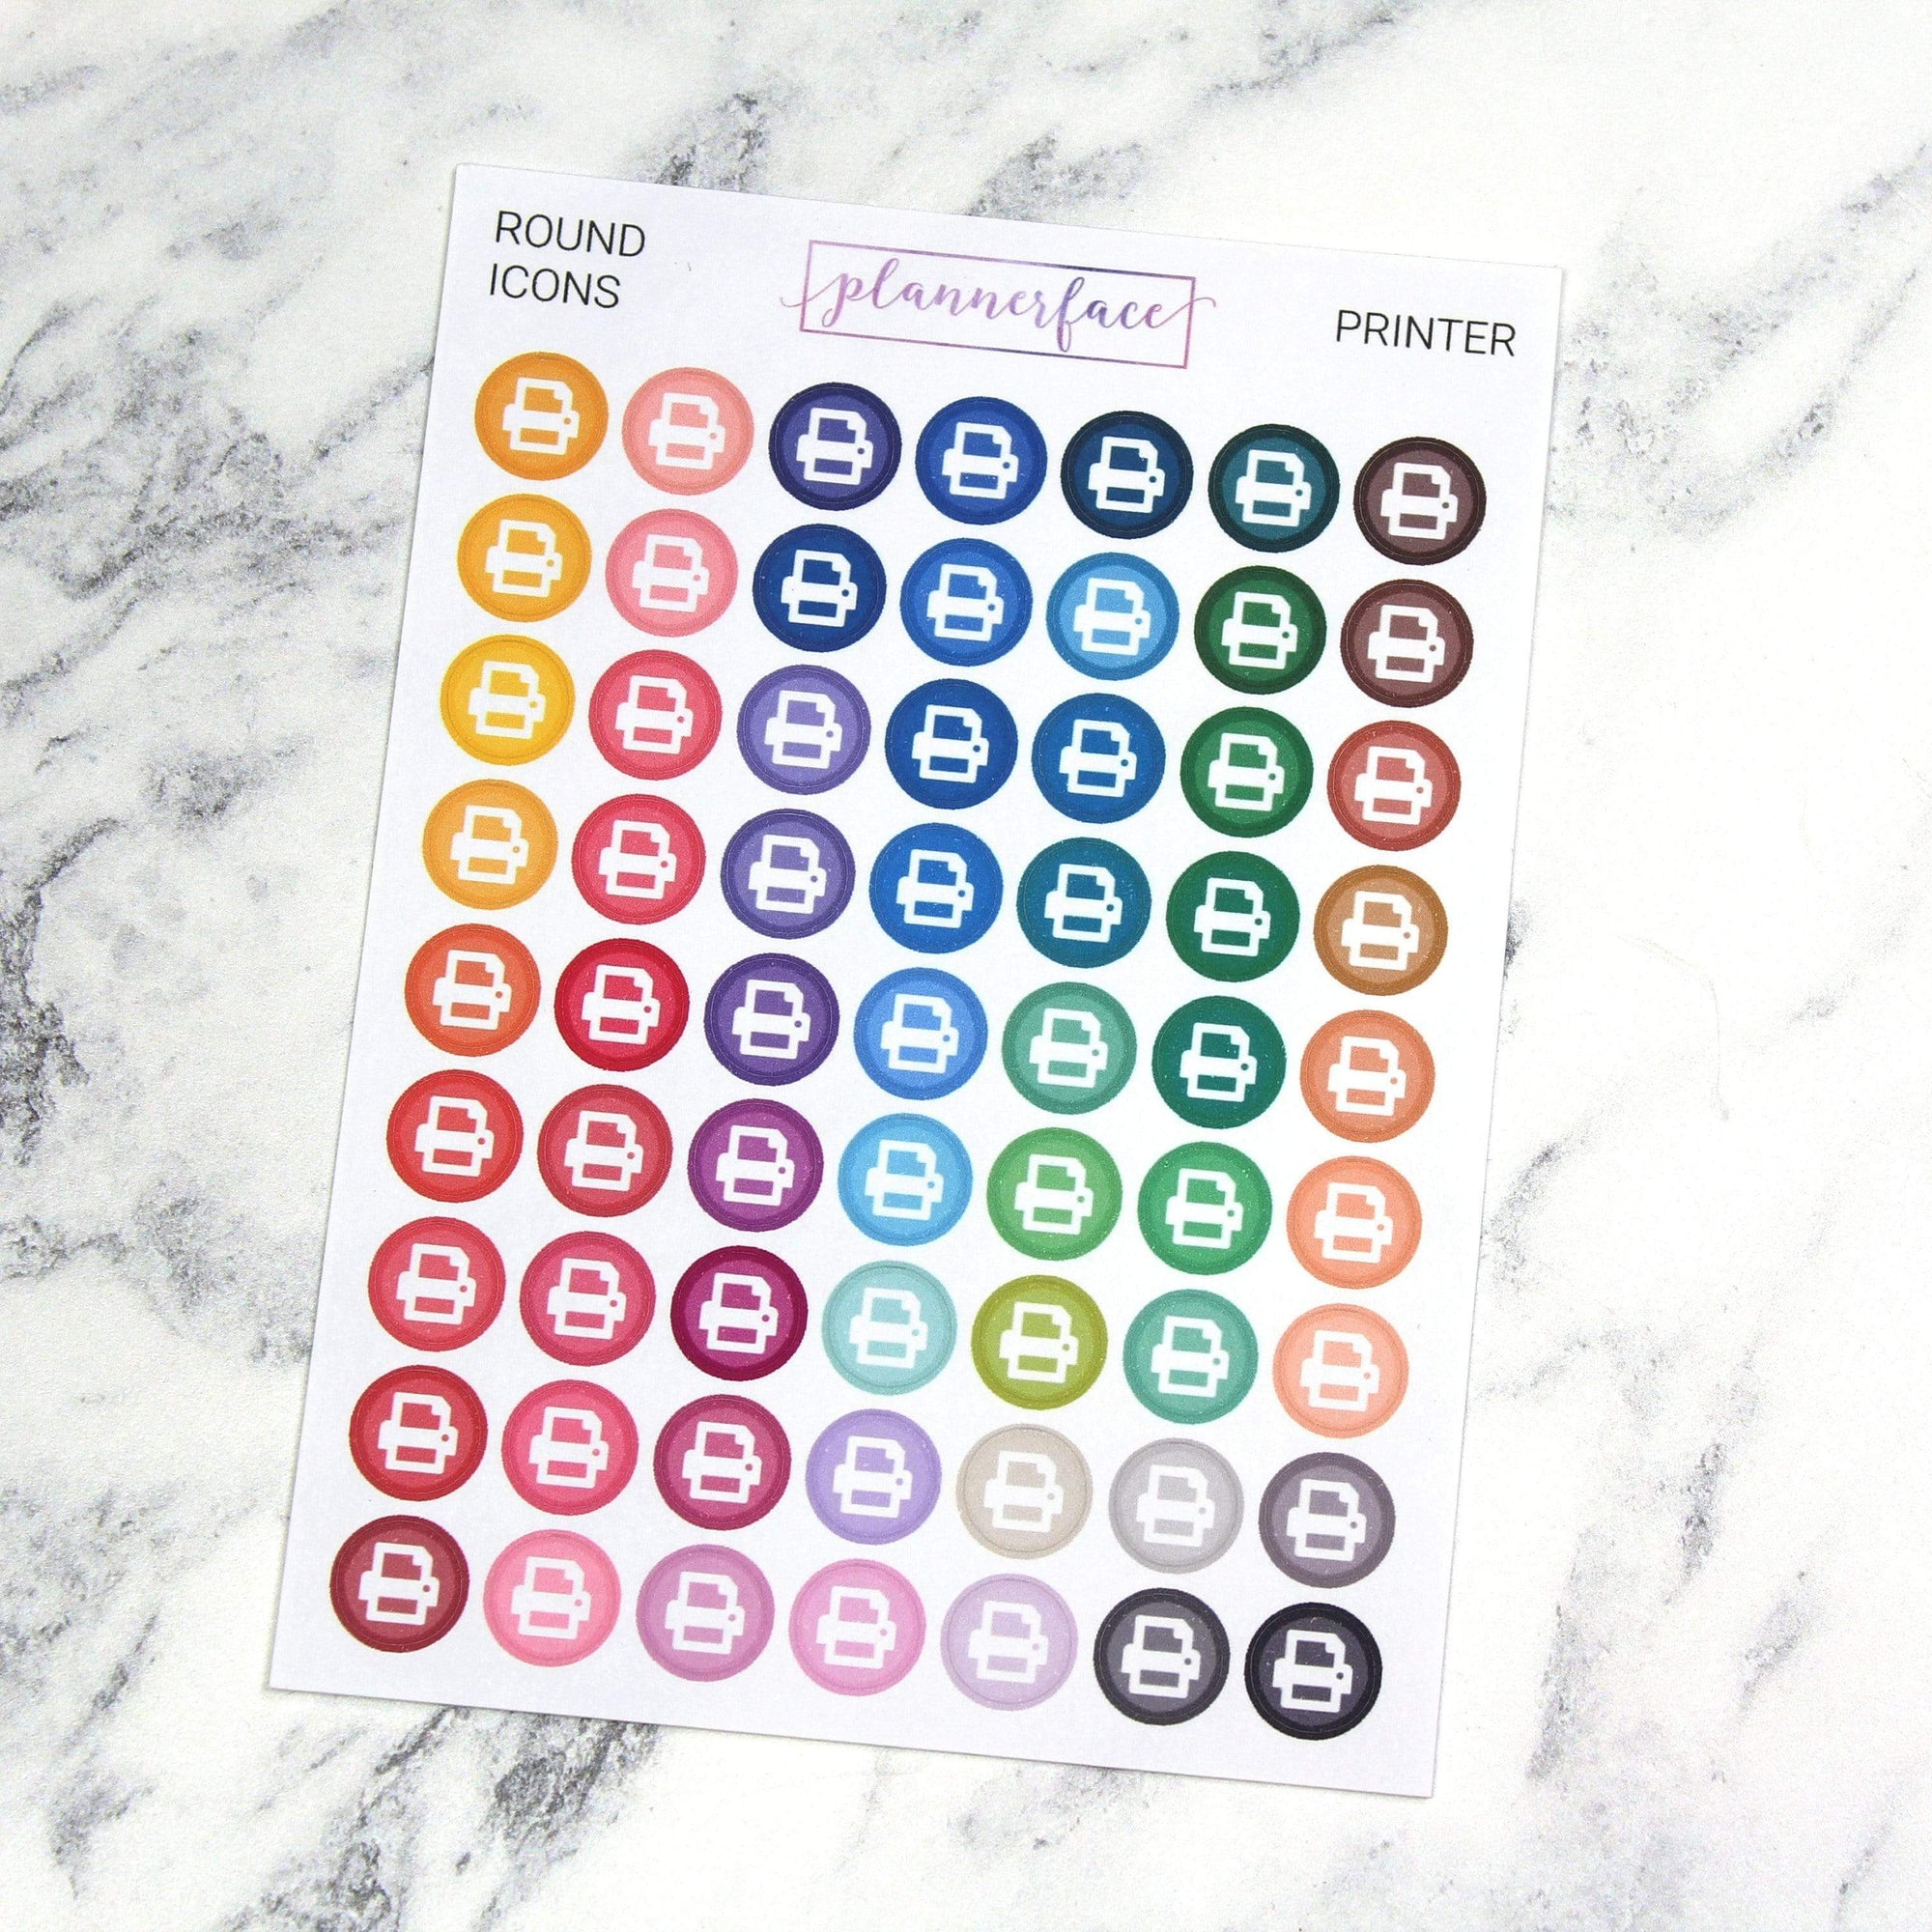 Plannerface Printer | Round Multicolour Icons Planner Stickers